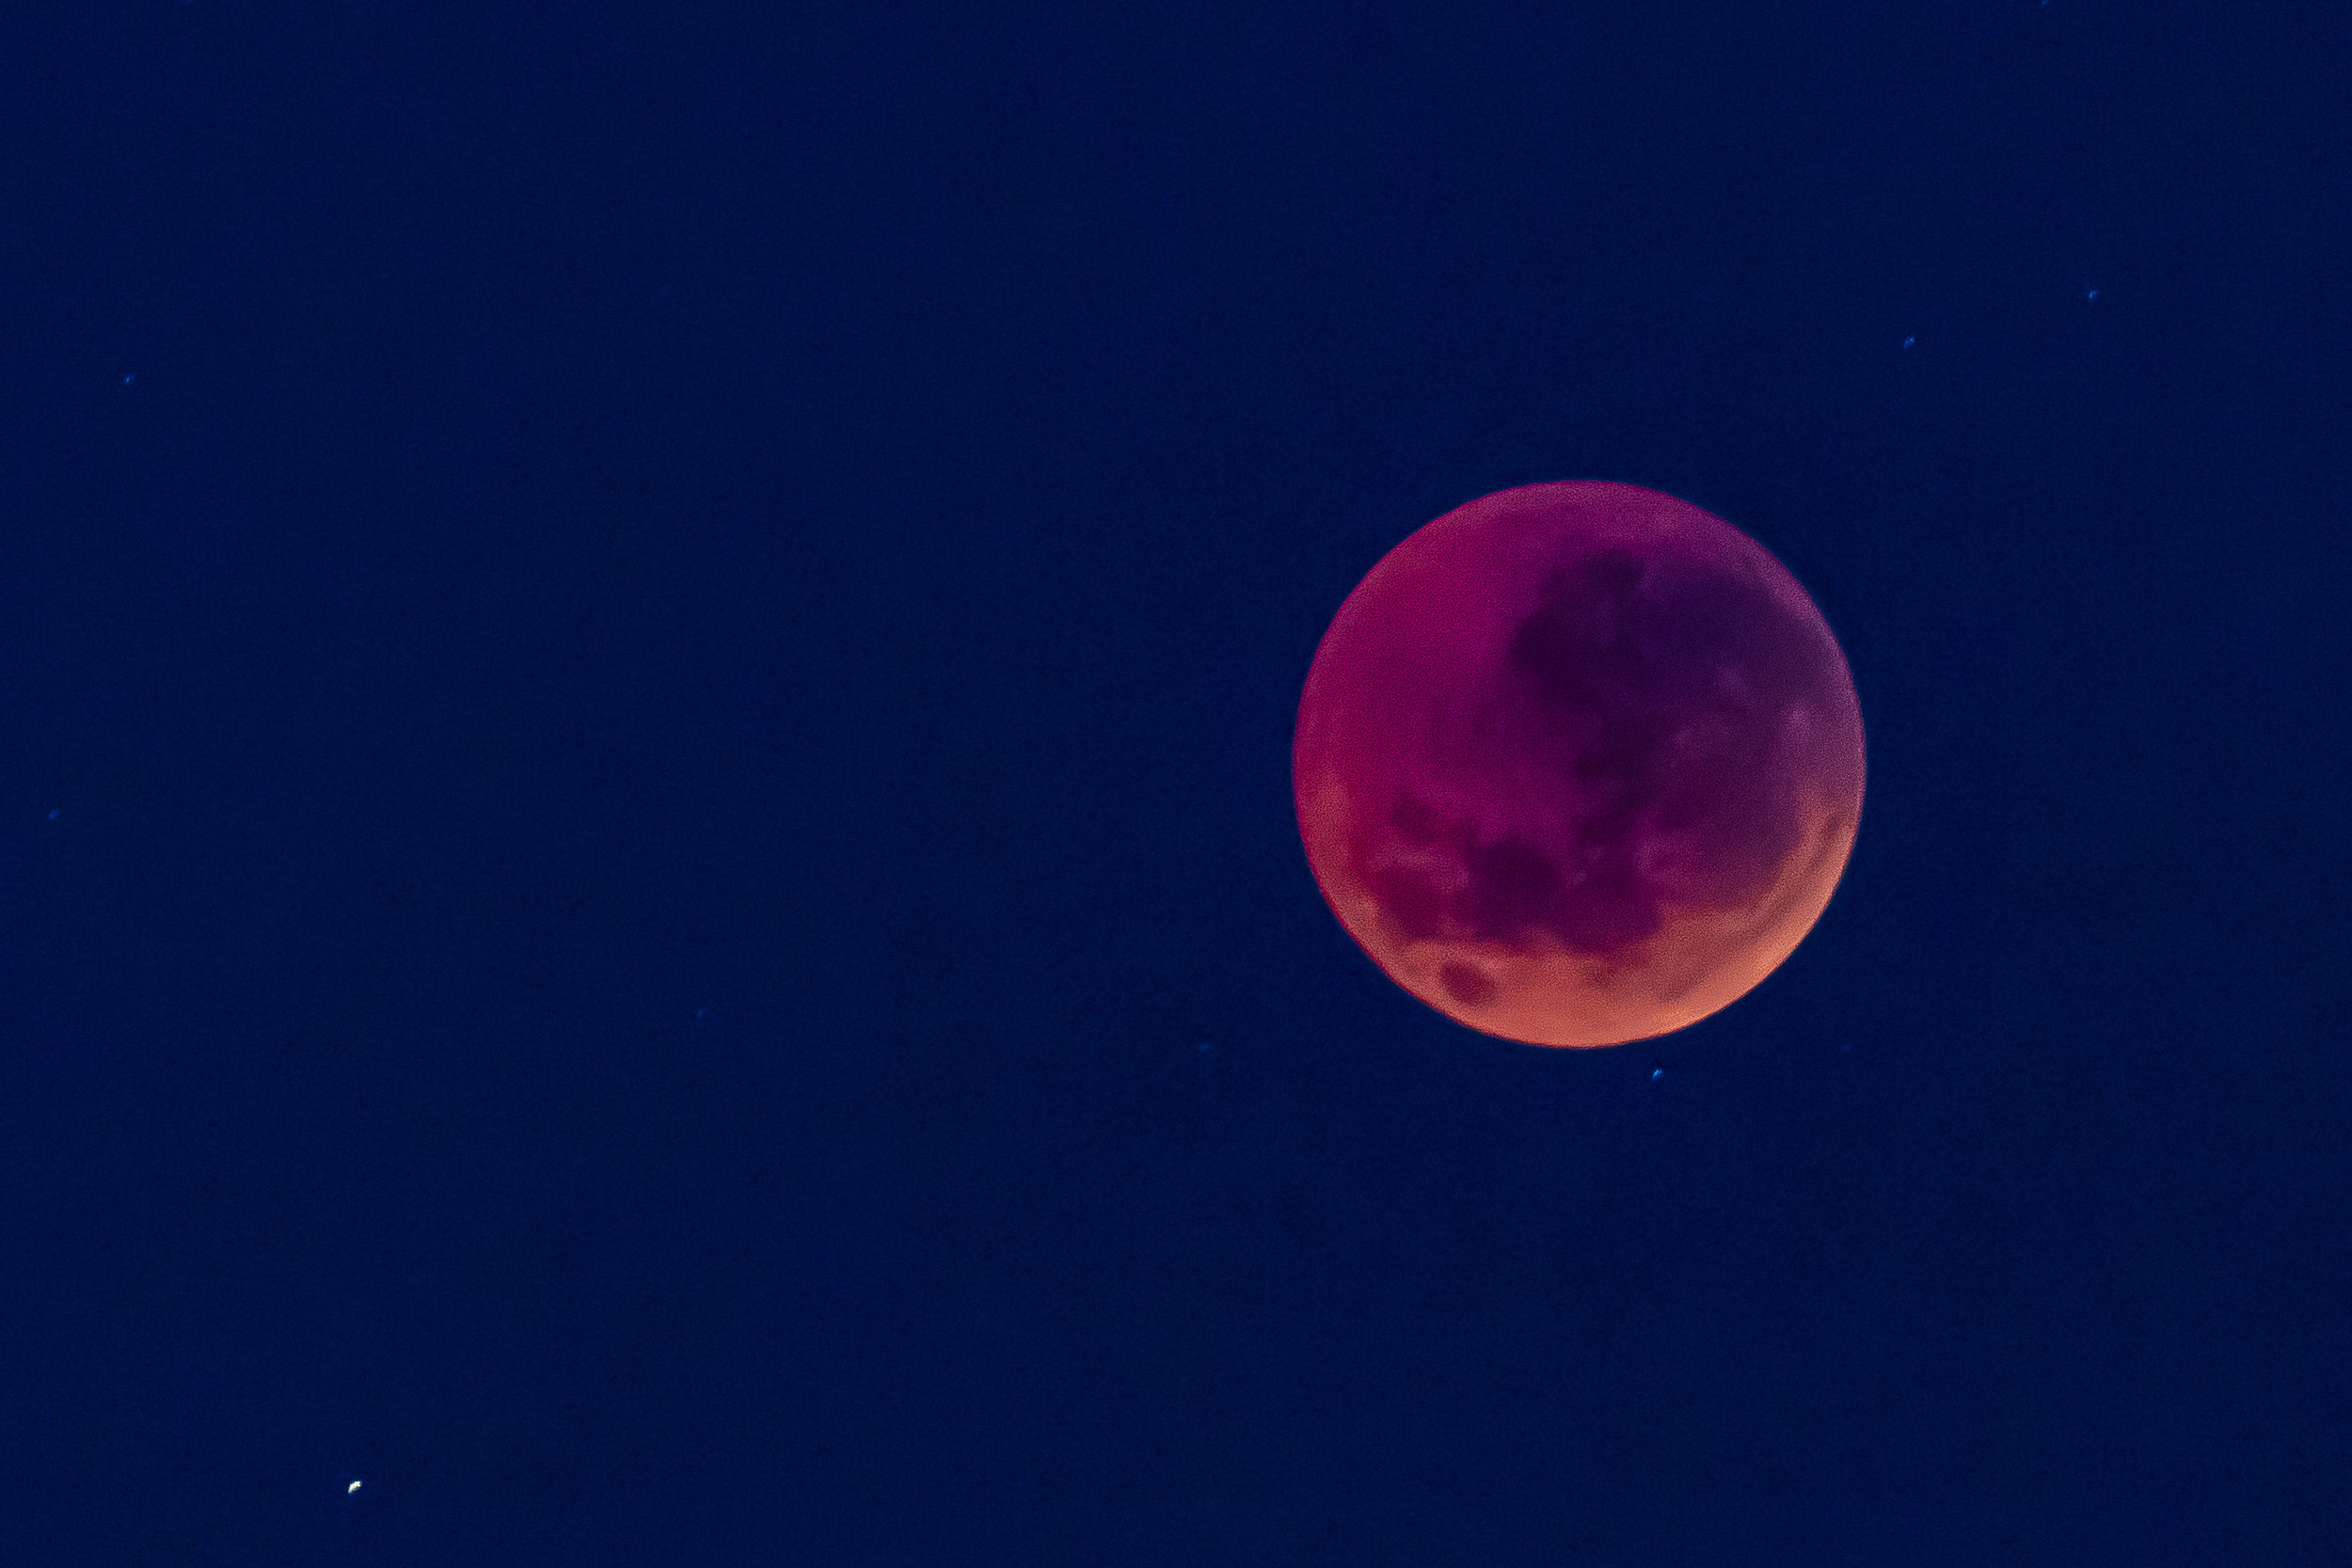 …a blood moon which means that while the moon is in total shadow (blocked by both the sun and earth), the sun's light is passing through Earth and bending towards the moon making the moon appear to be blood red.